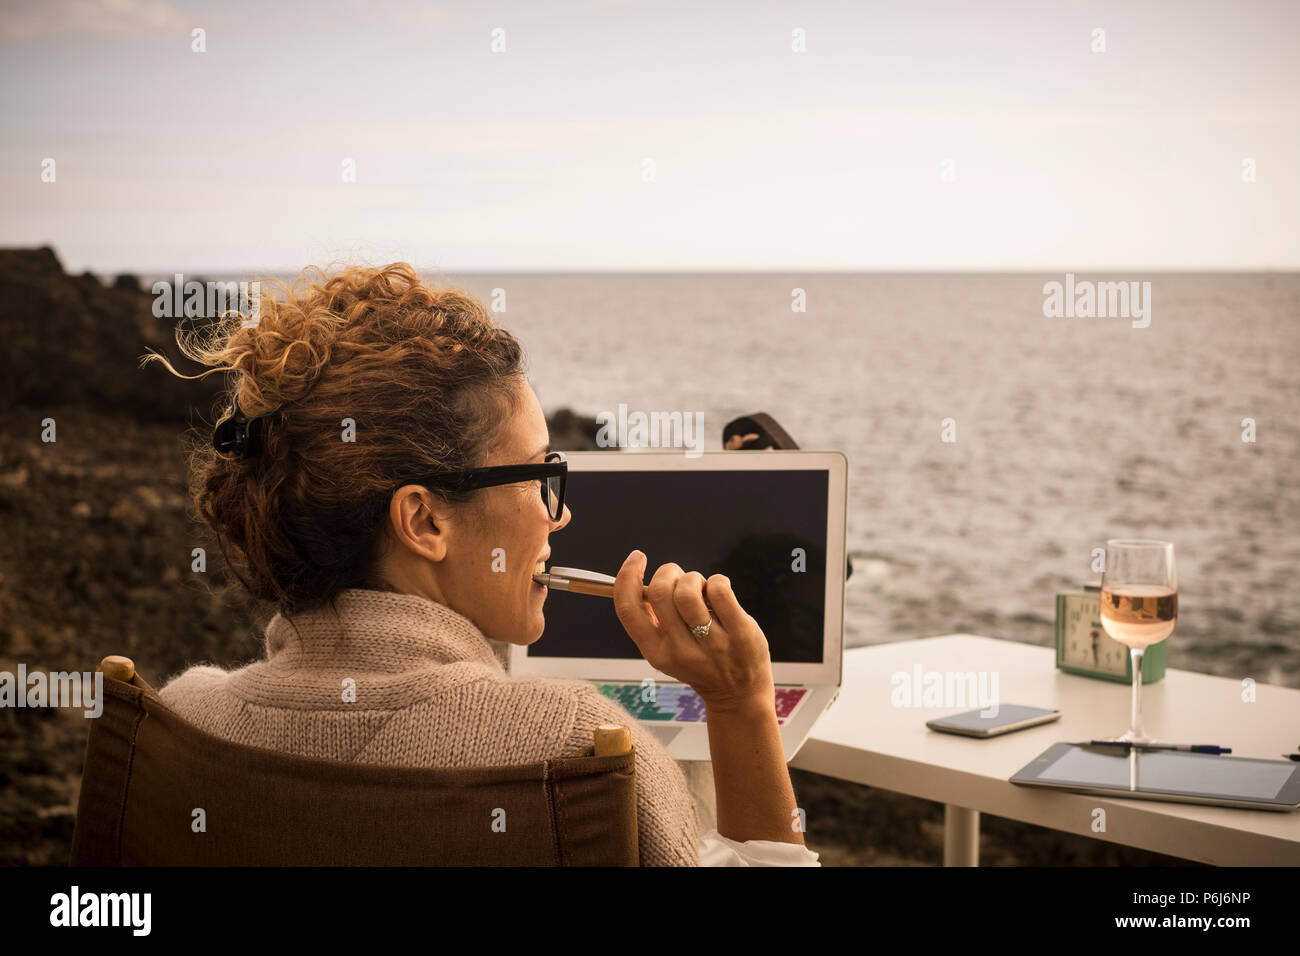 Nice lifestyla for nbeautiful caucasian woman working in alternative office place. outdoor in front of the ocean. digital nomad and internet work for  - Stock Image